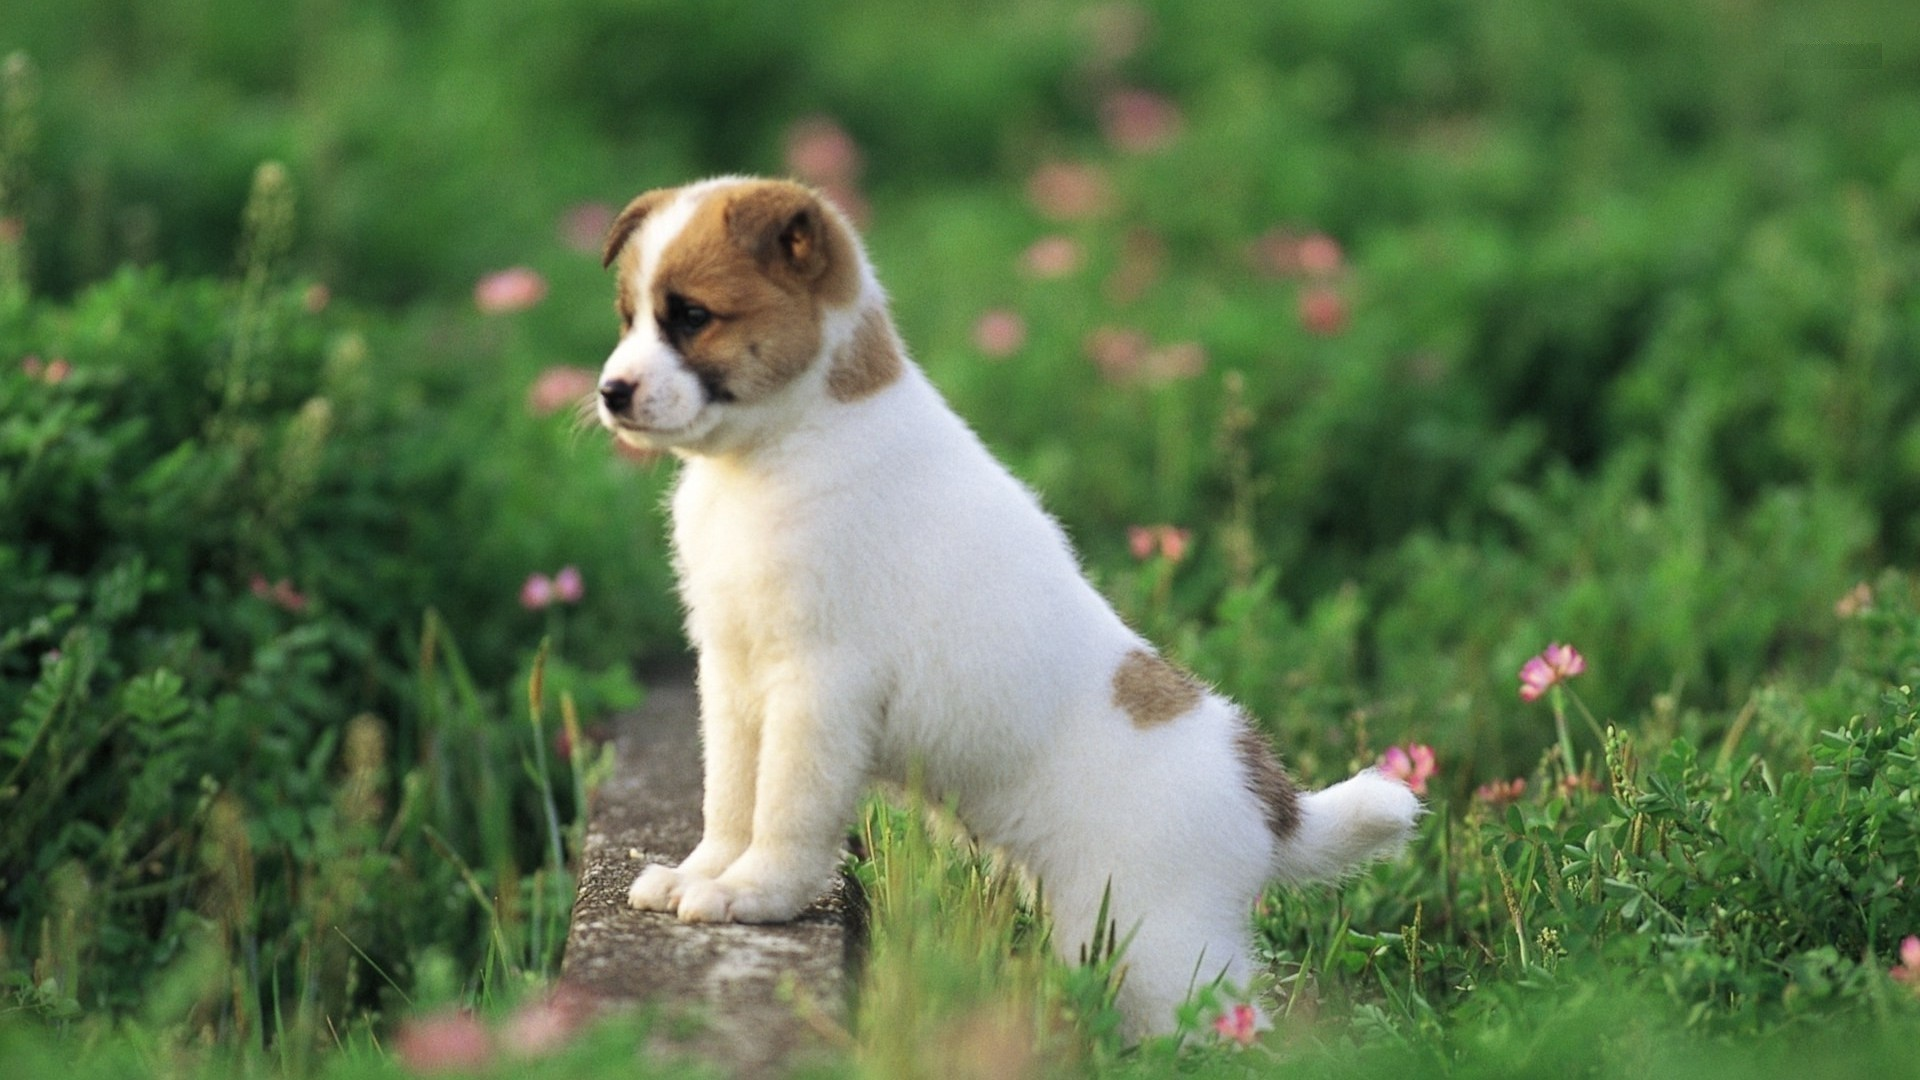 Cute Puppies Wallpaper Hd 55 Images